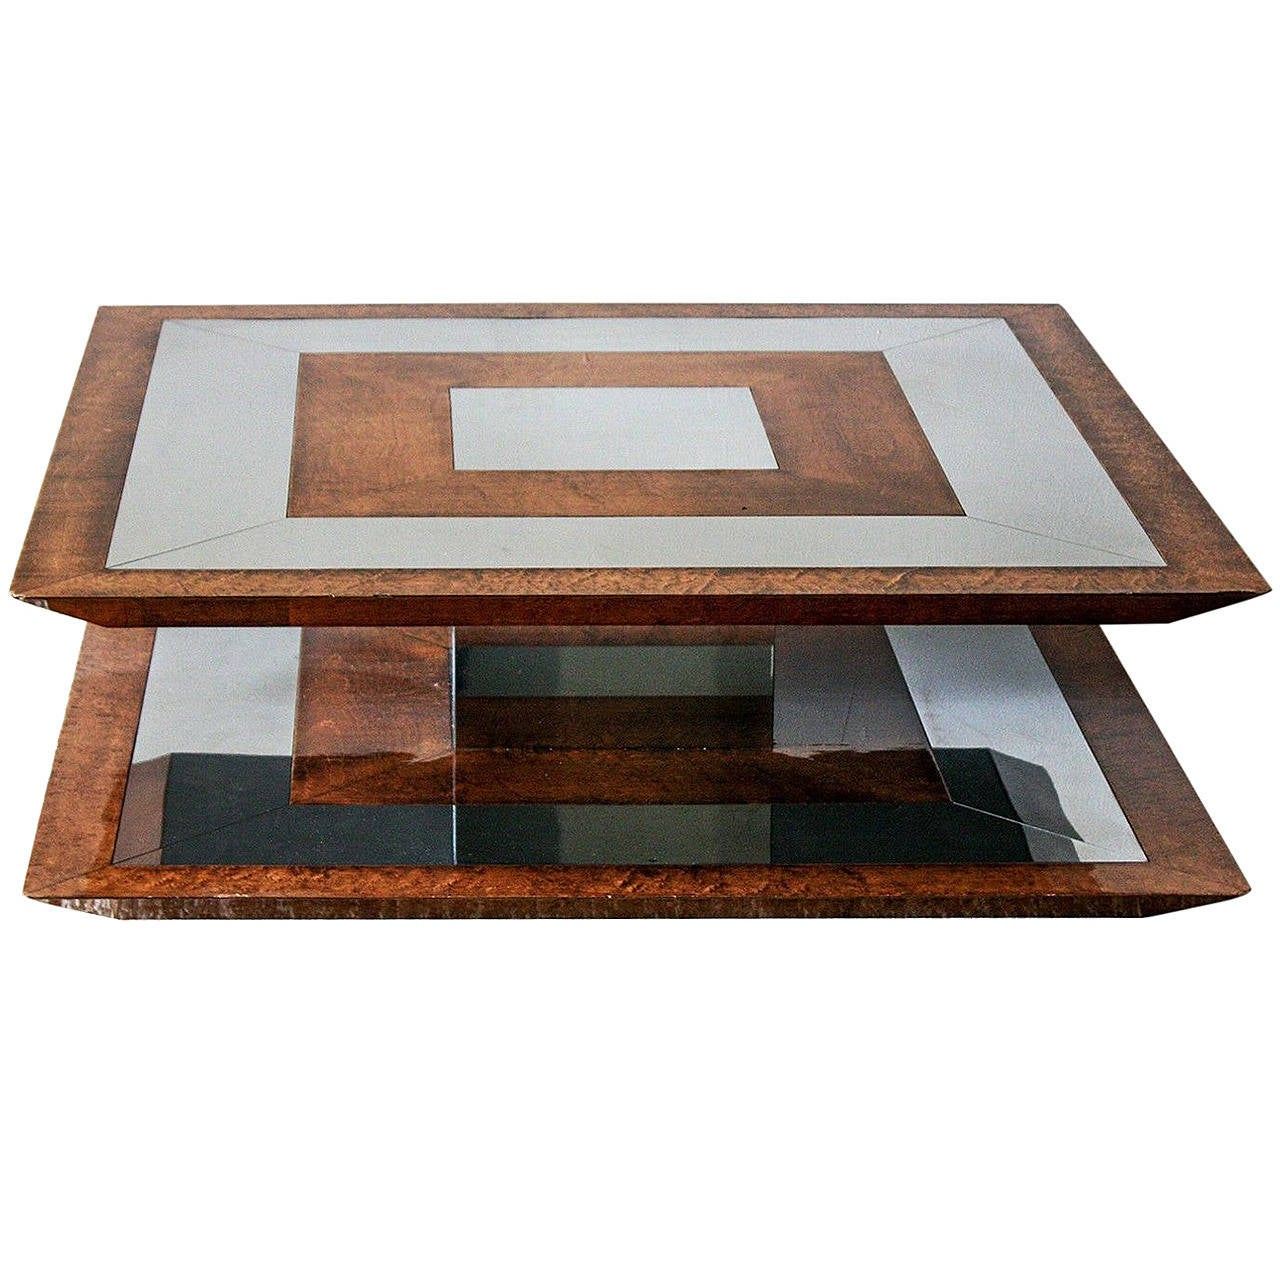 Burl Wood And Chrome Coffee Table In The Style Paul Evans At 1stdibs